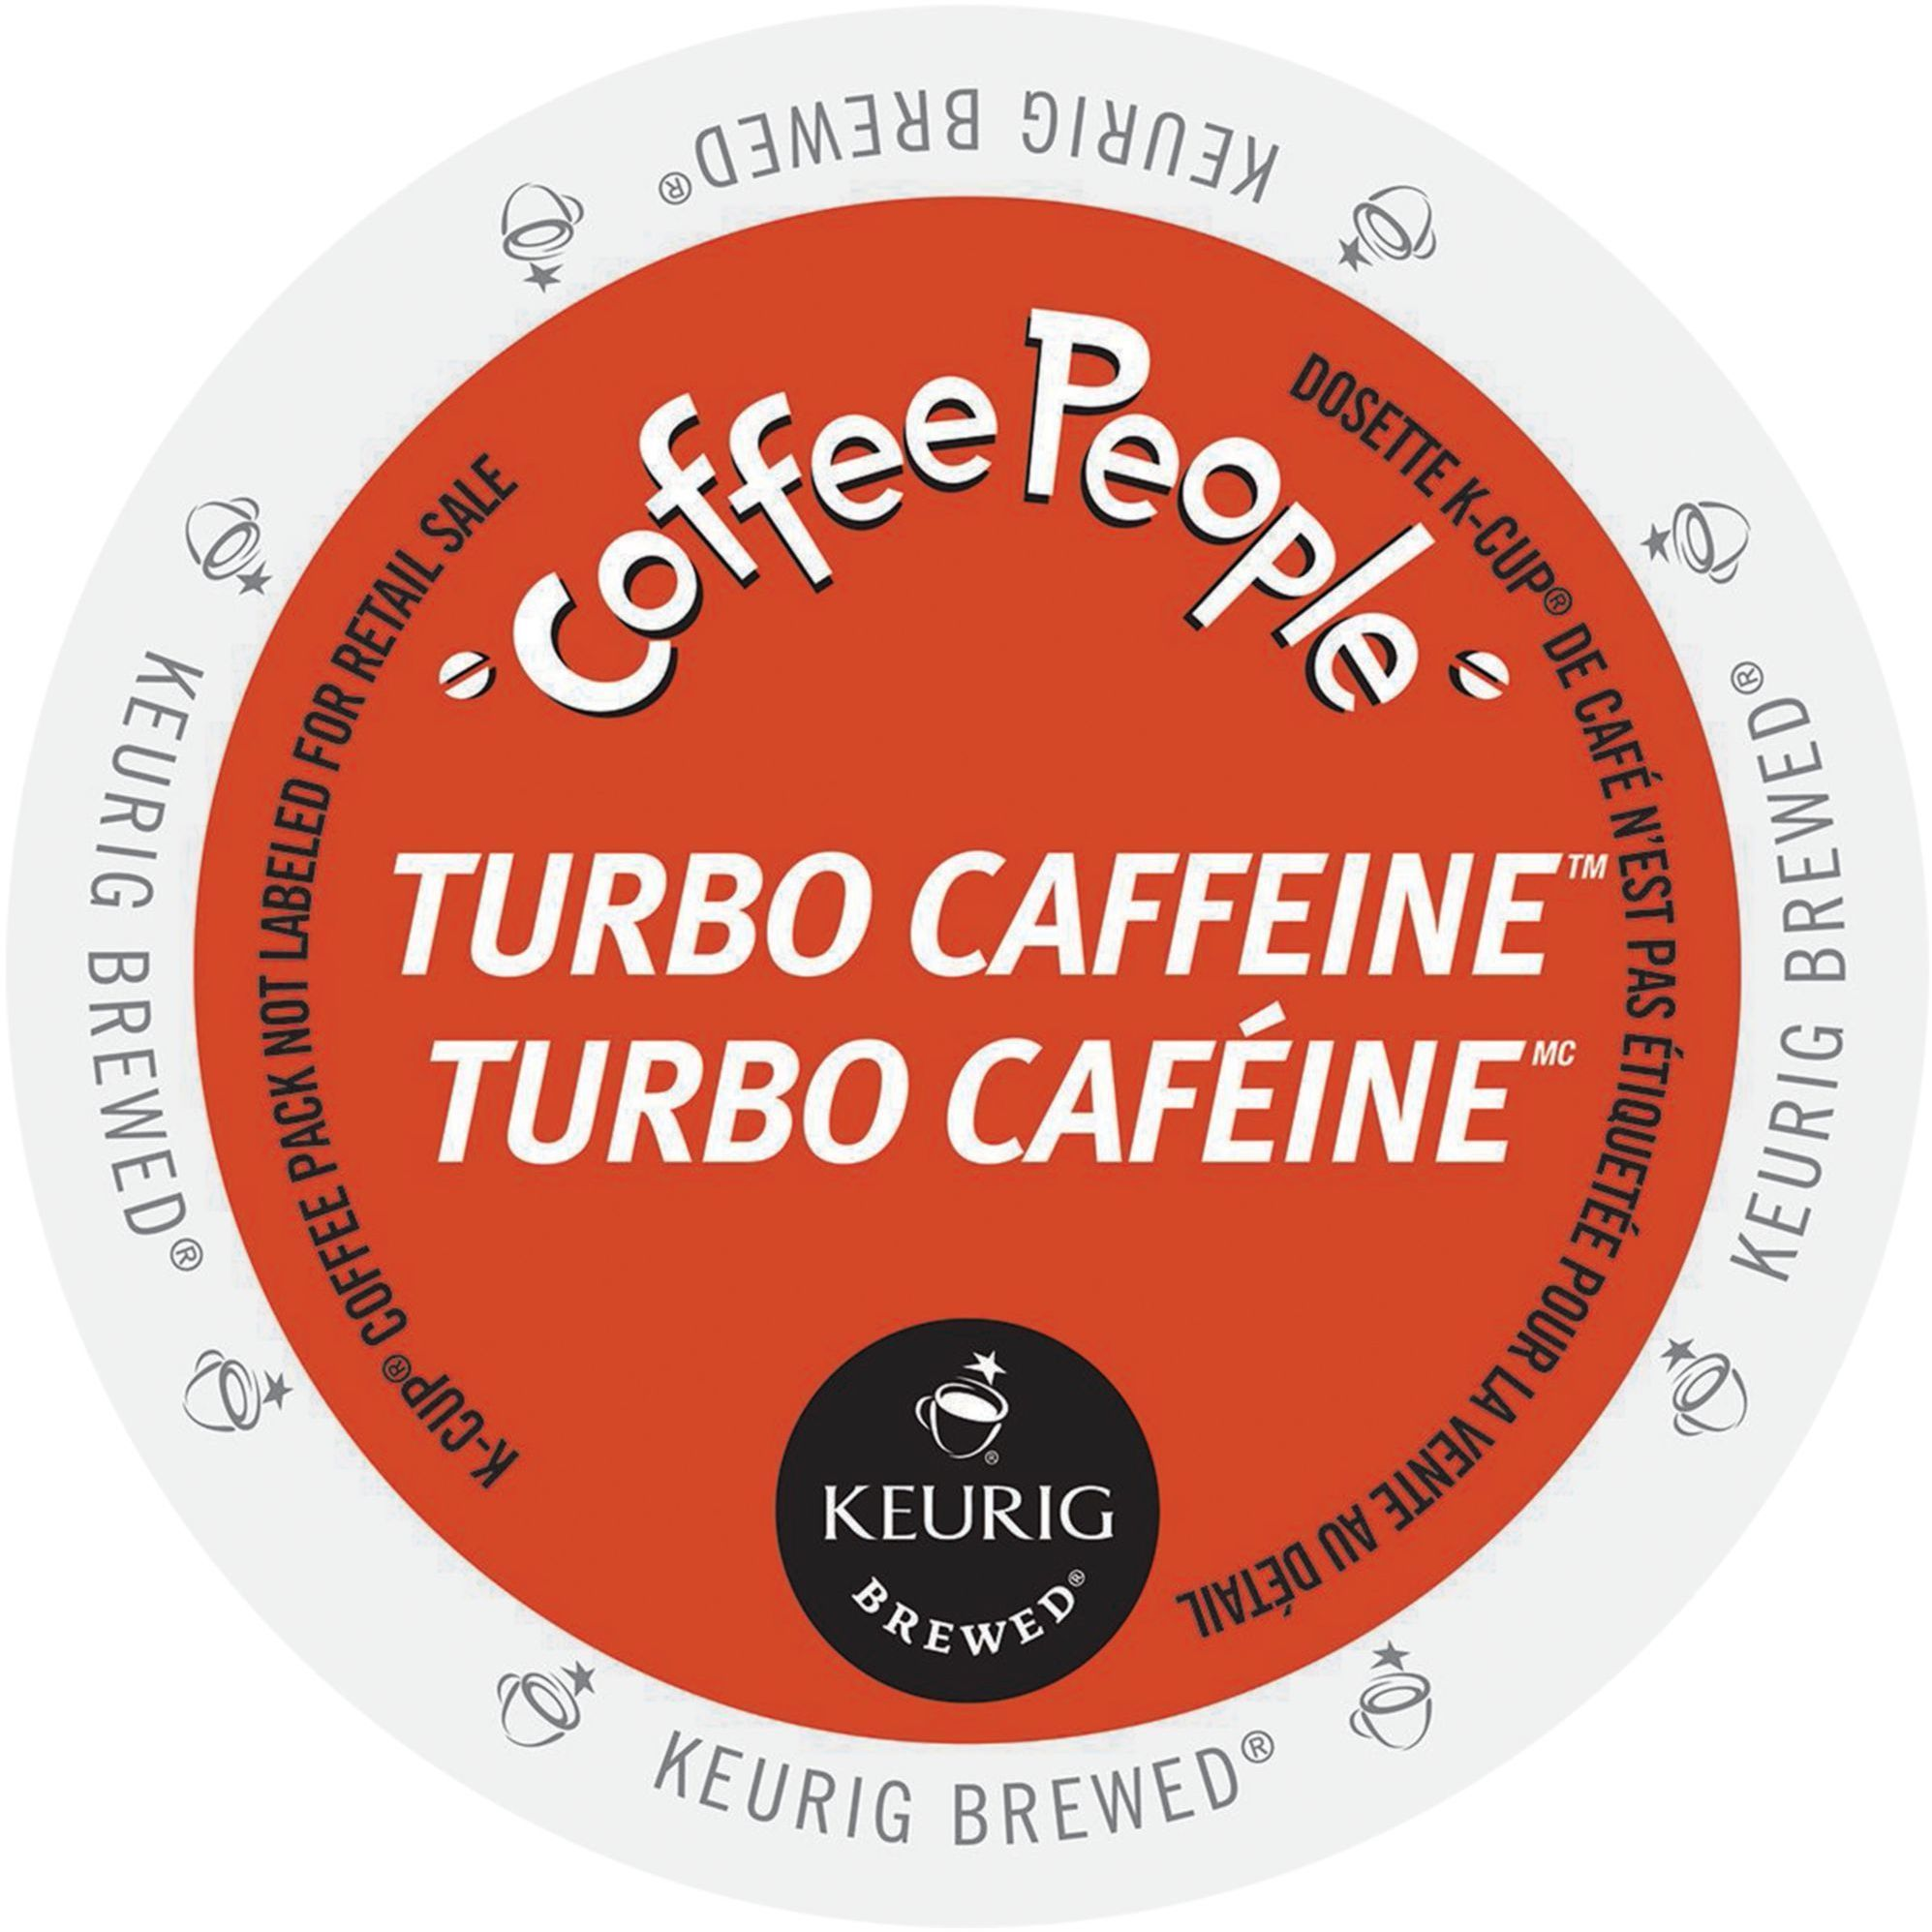 Coffee People Turbo Caffeine, K-Cup Portion Pack for Keurig Brewers (24 Count)